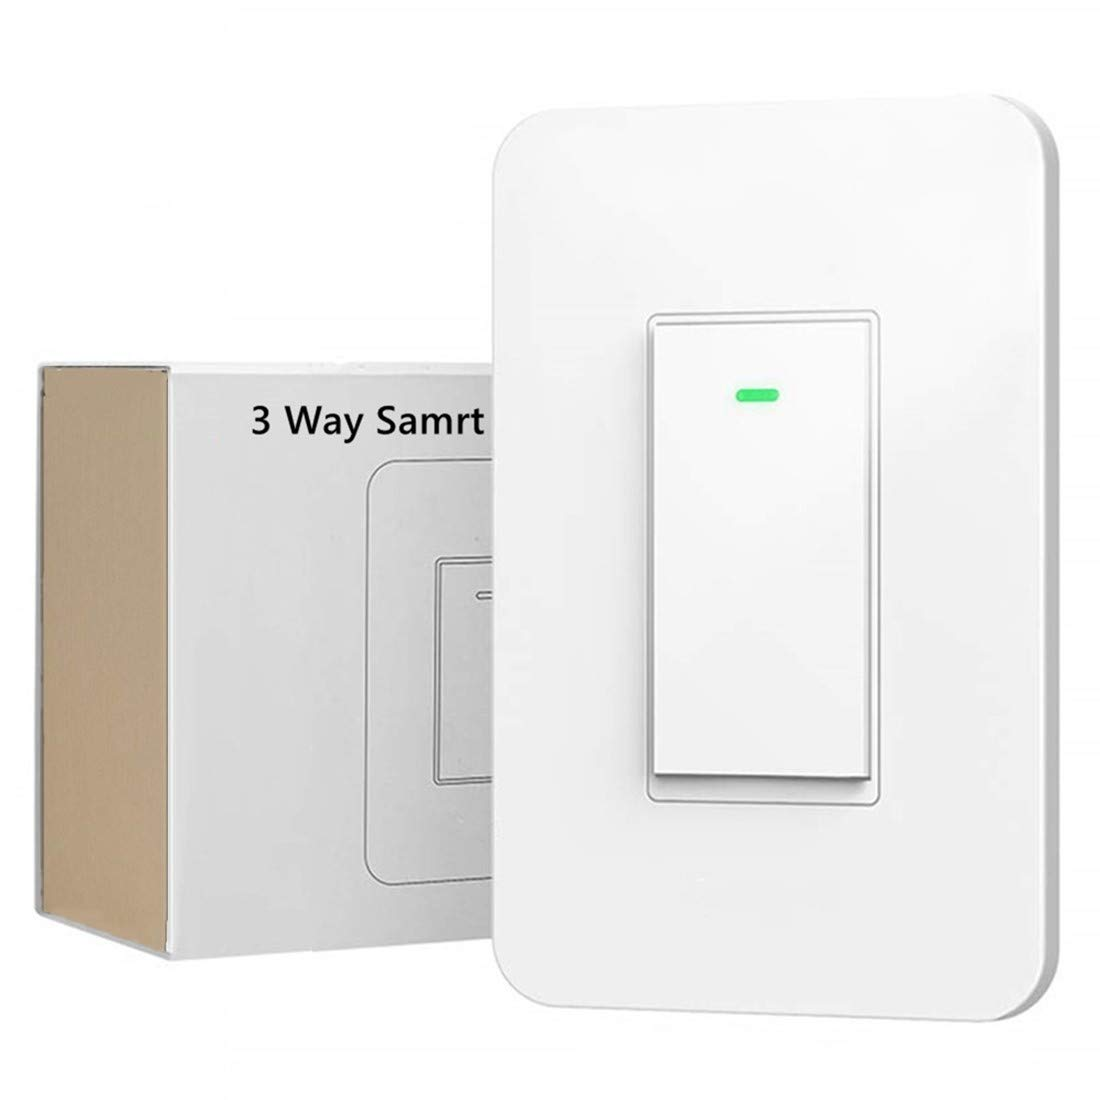 3-Way Smart Wi-Fi Wall Light Switch Work with Amazon Alexa Google Assistant, Timing Function No Hub Required (3 Way Smart Switch 1- Pack)